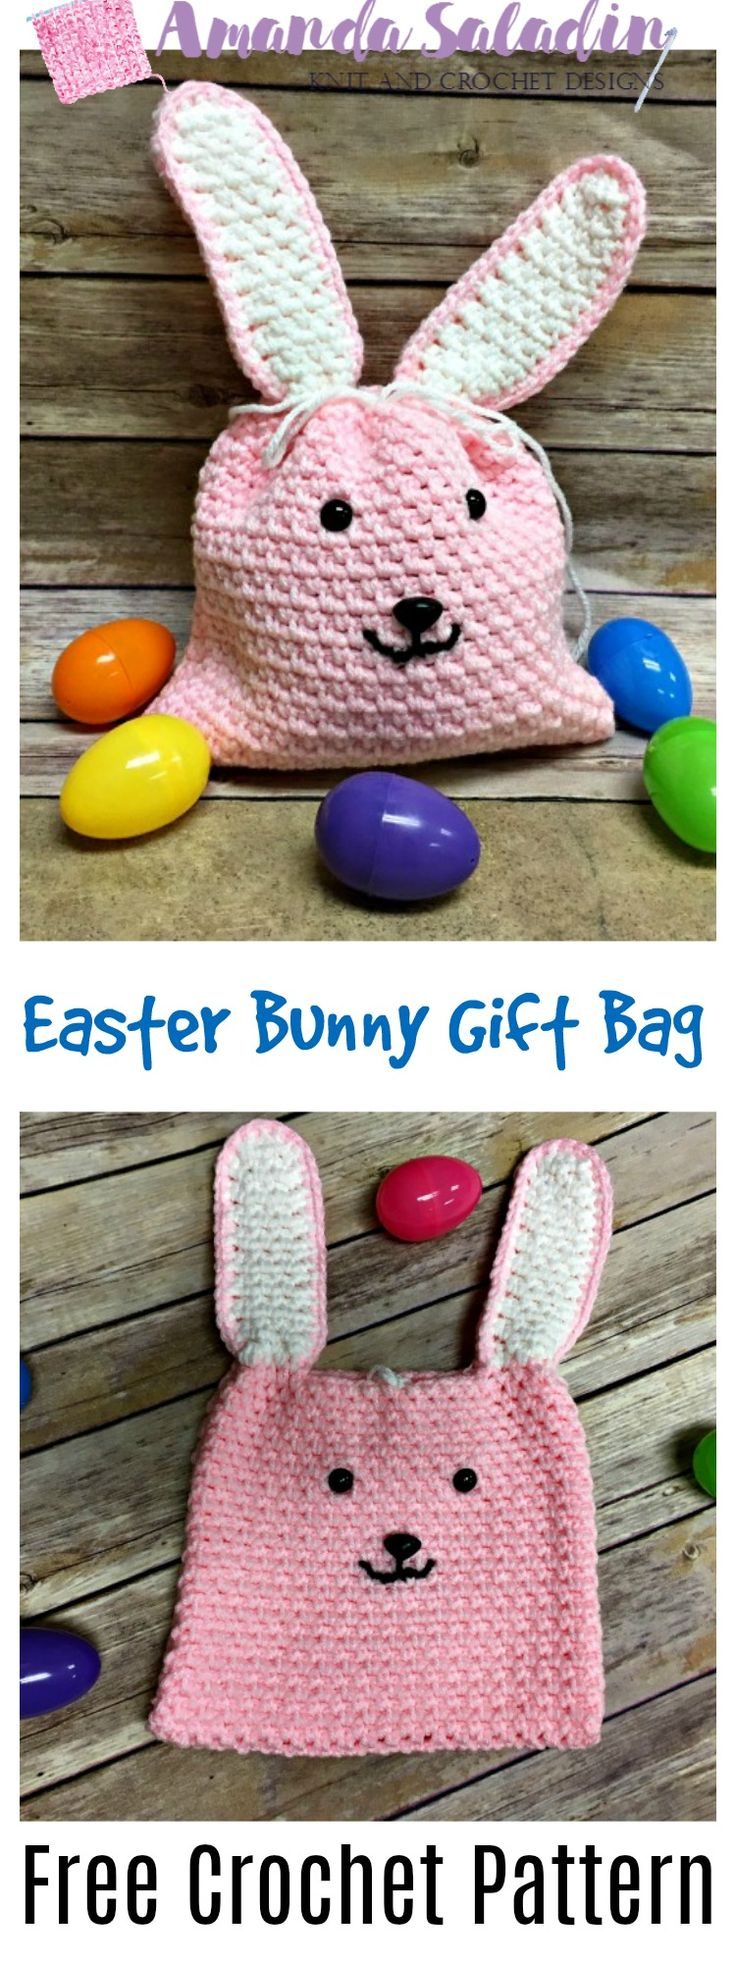 This free crochet pattern for the Easter Bunny Gift Bag is sure to please a little one in your life - super easy to make, too!